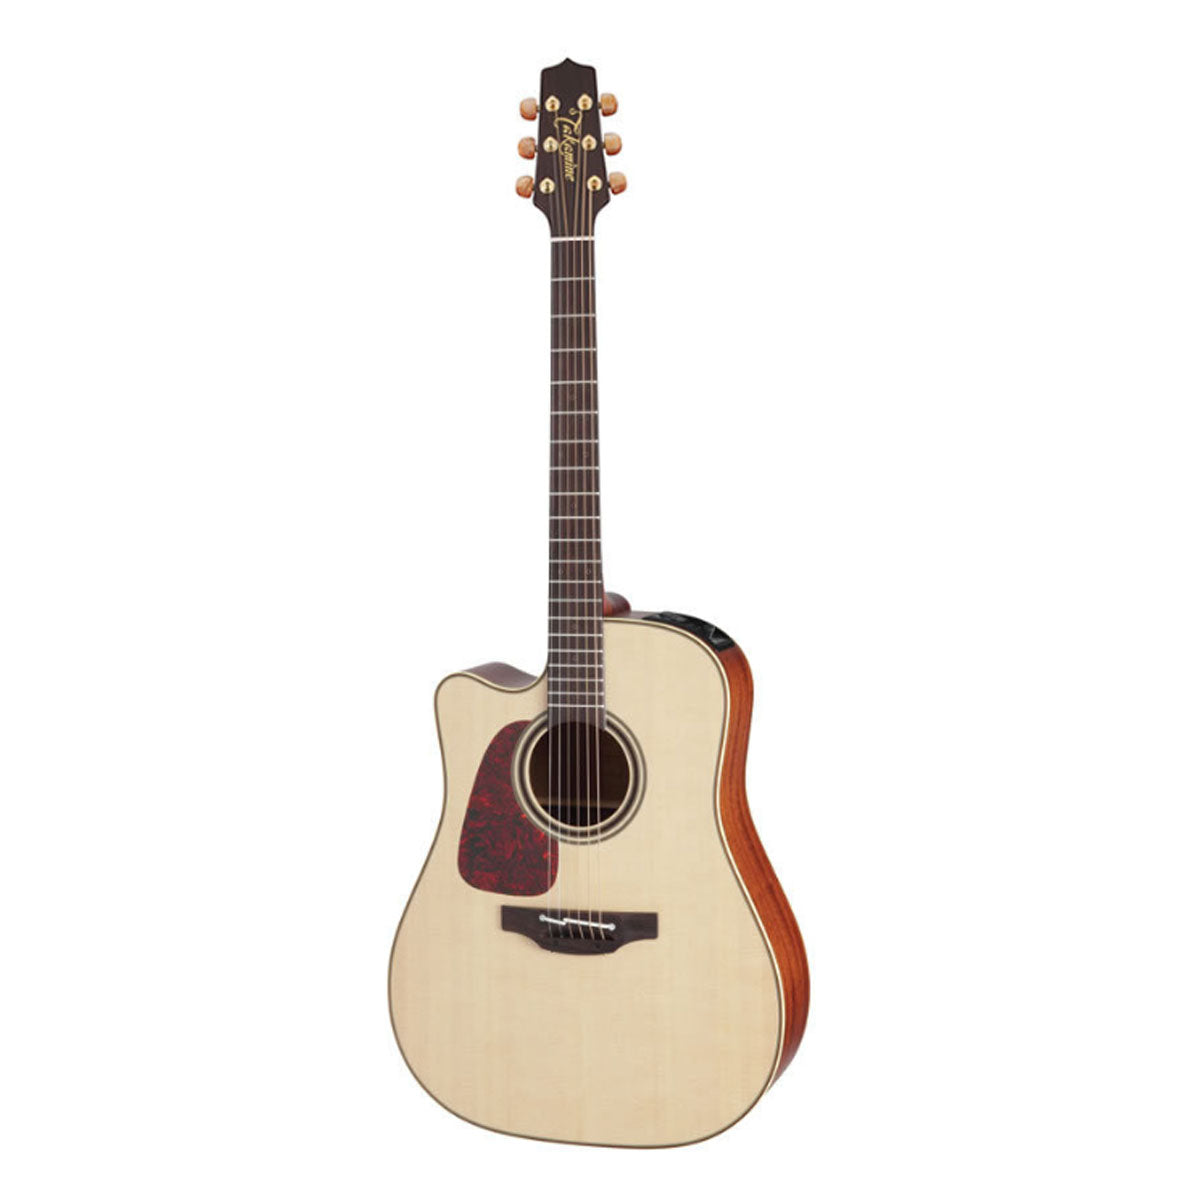 Takamine P4DC Pro Series 4 Acoustic Guitar Left Handed Dreadnought Natural w/ Pickup